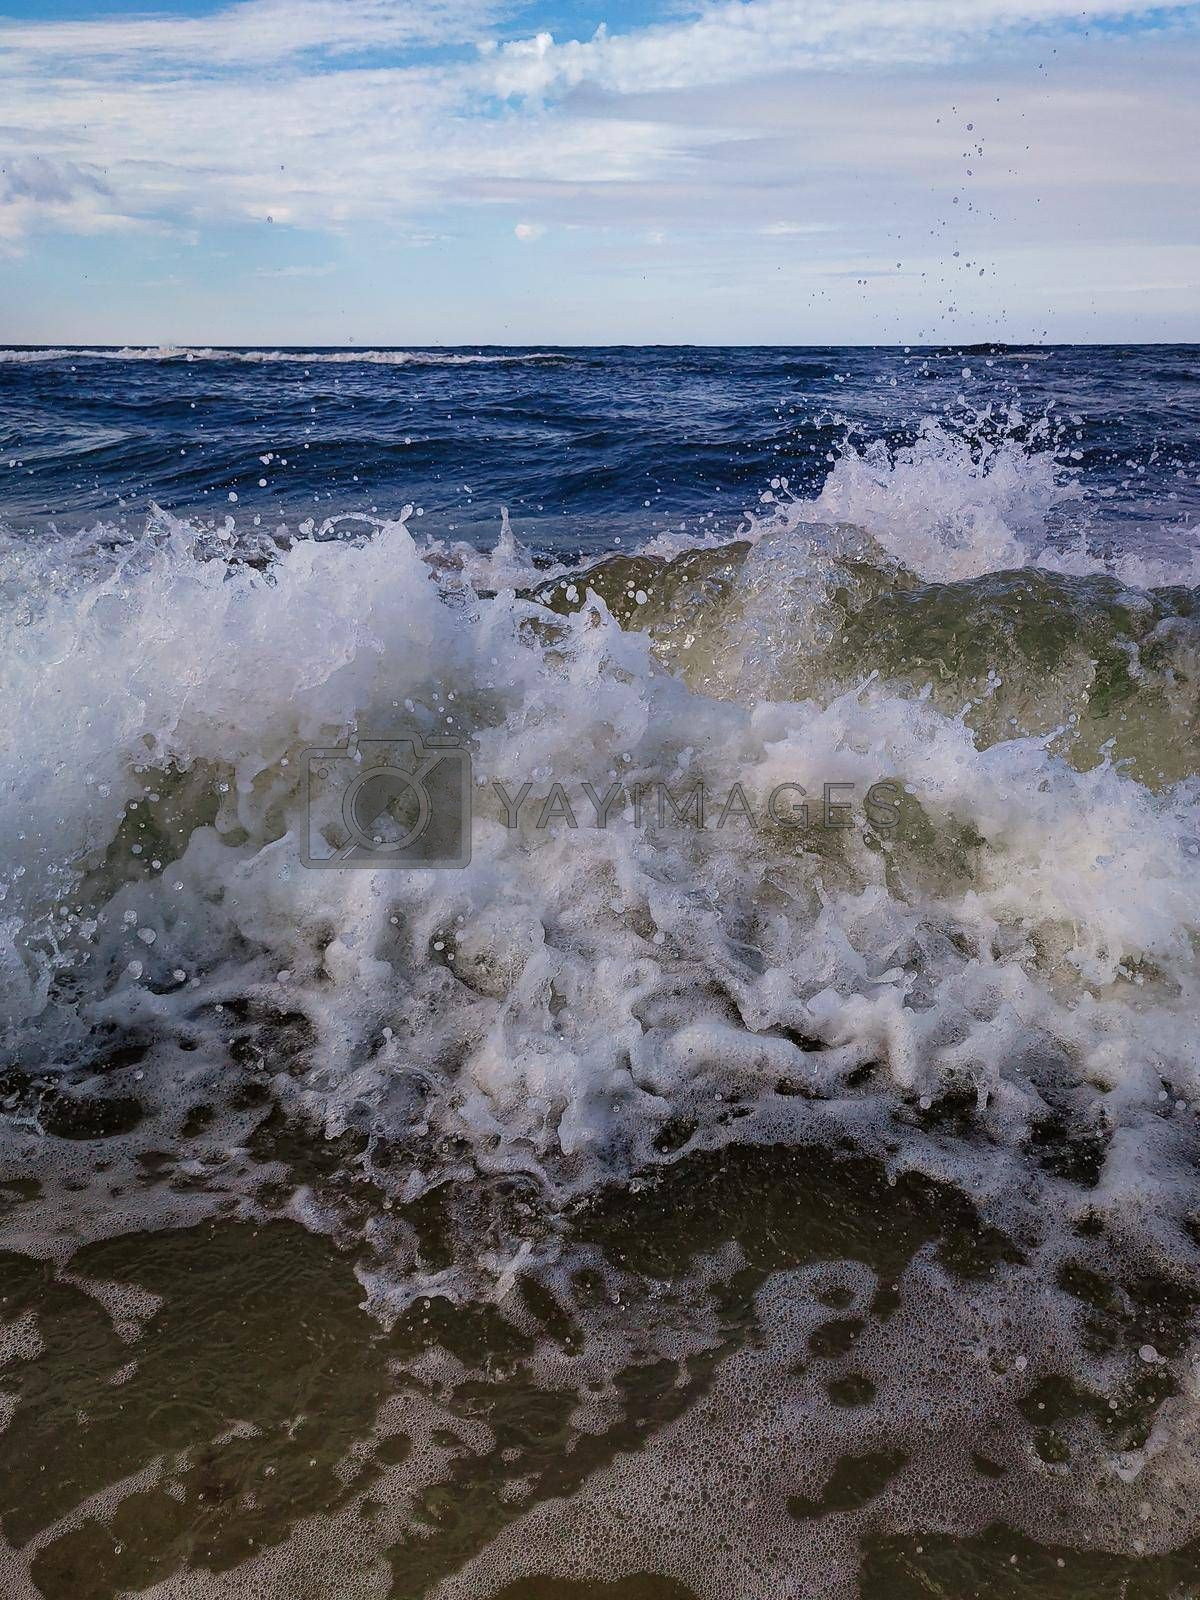 Mesmerizing view of a wave splashing on the Baltic sea